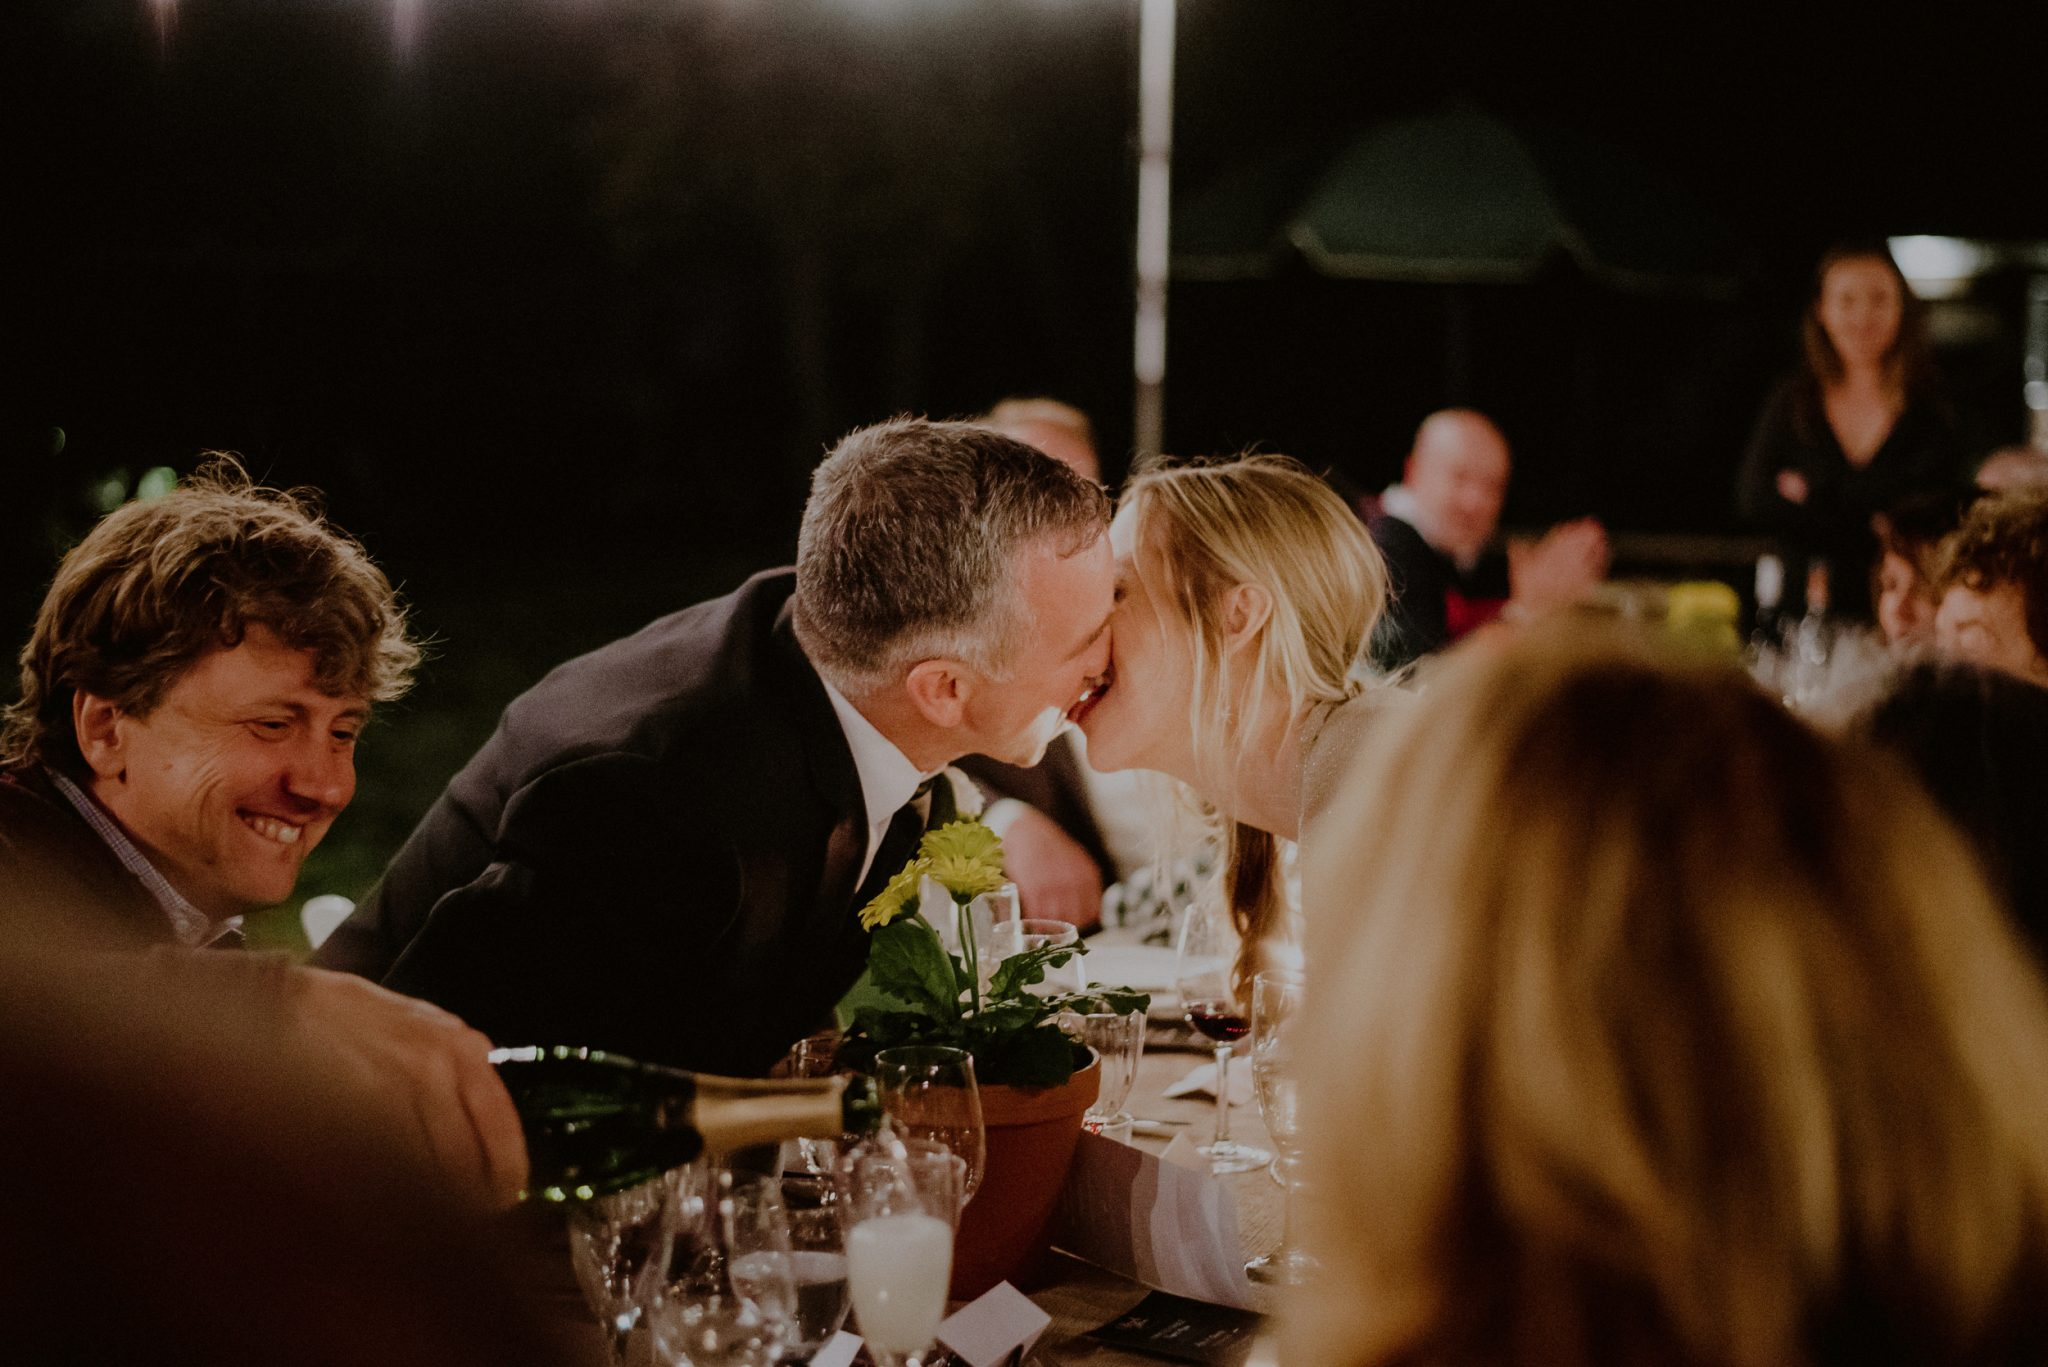 candid kiss between bride and groom during dinner